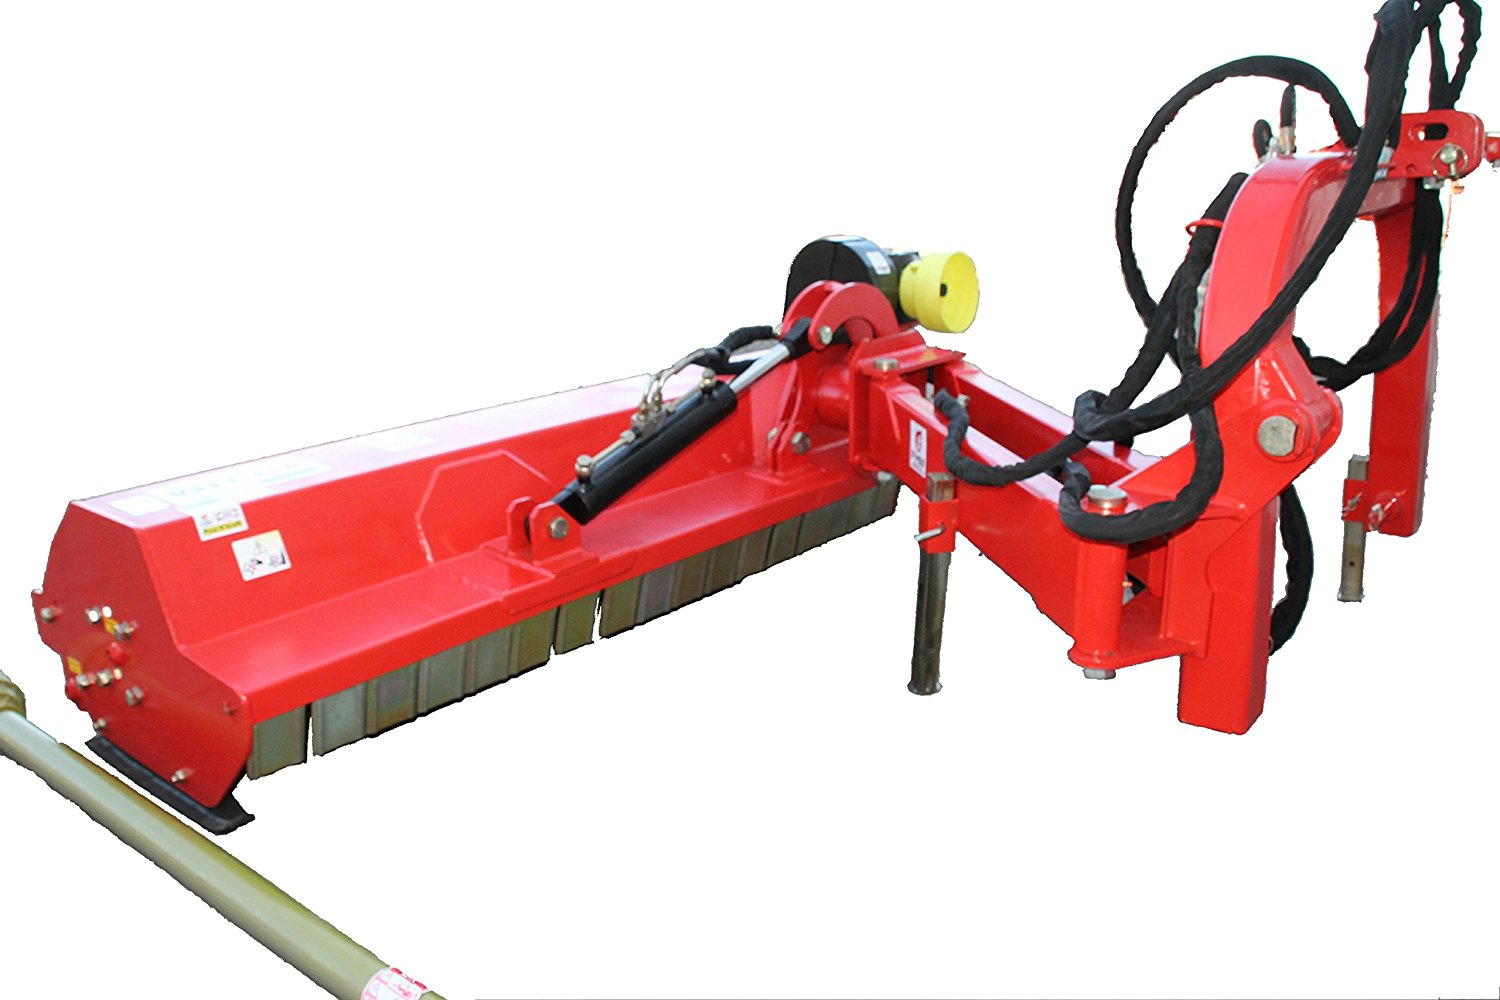 Cheap Flail Mower For Sale, find Flail Mower For Sale deals on line